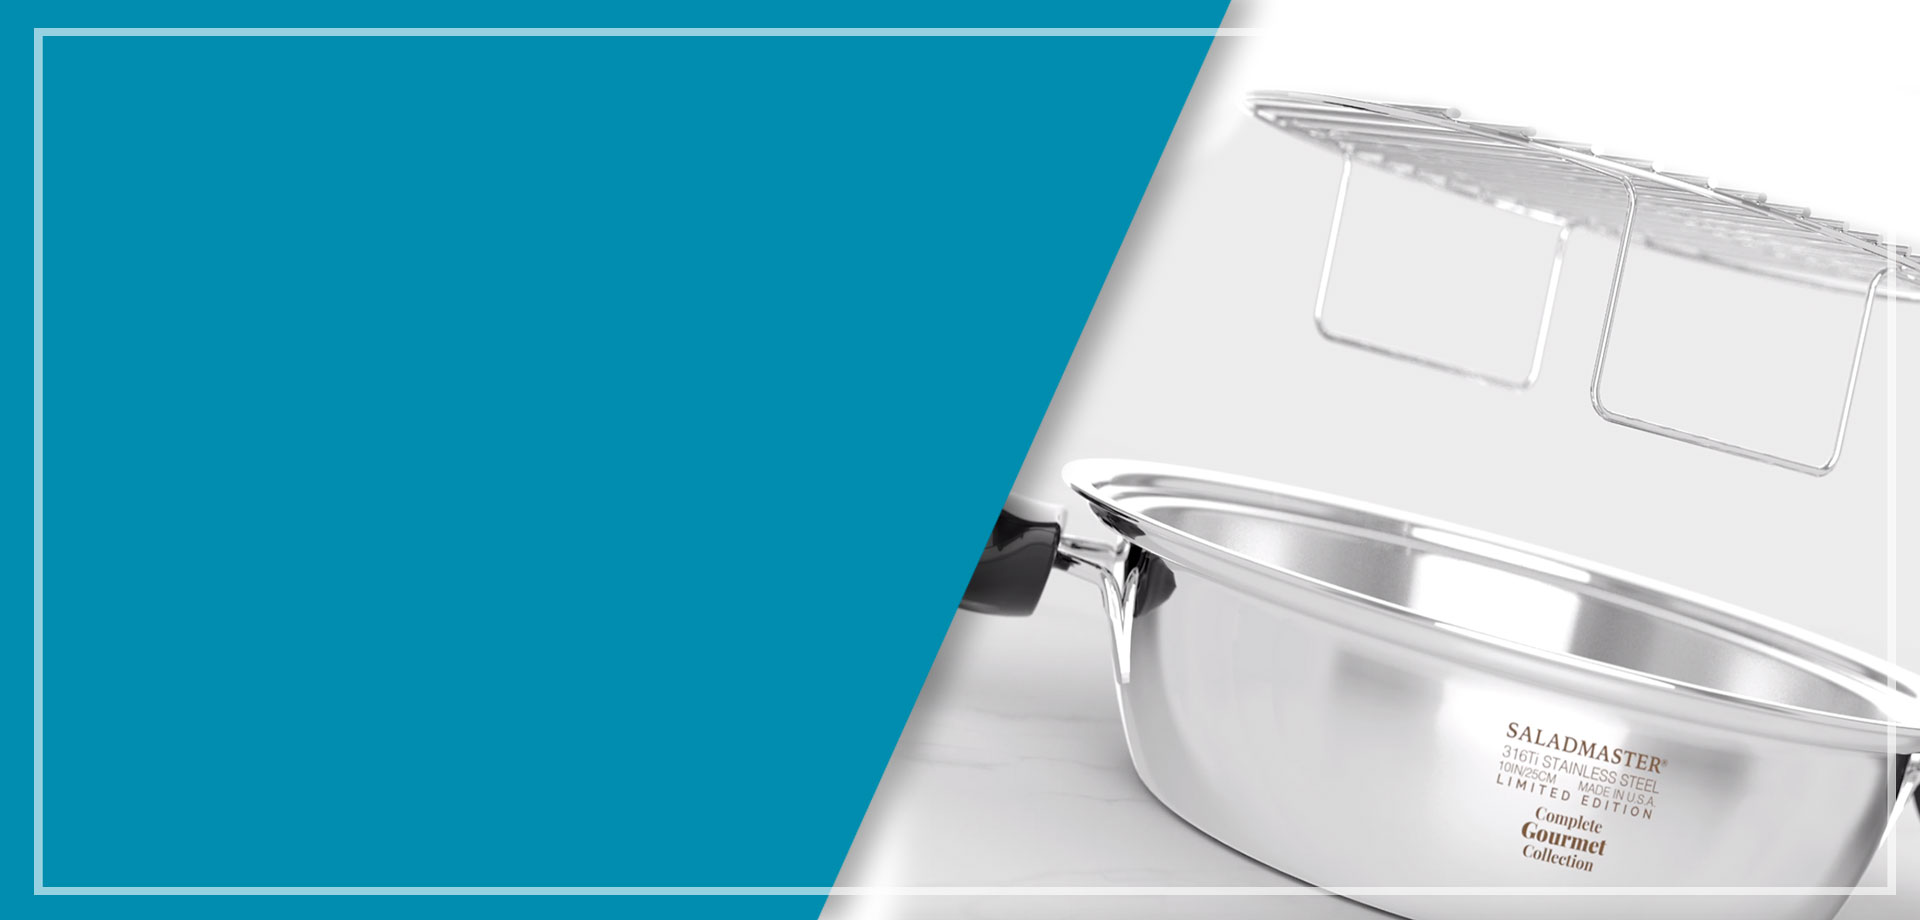 316 stainless steel, stainless steel cookware, titanium cookware, 316 titanium cookware, 316 ti cookware, 316 cookware